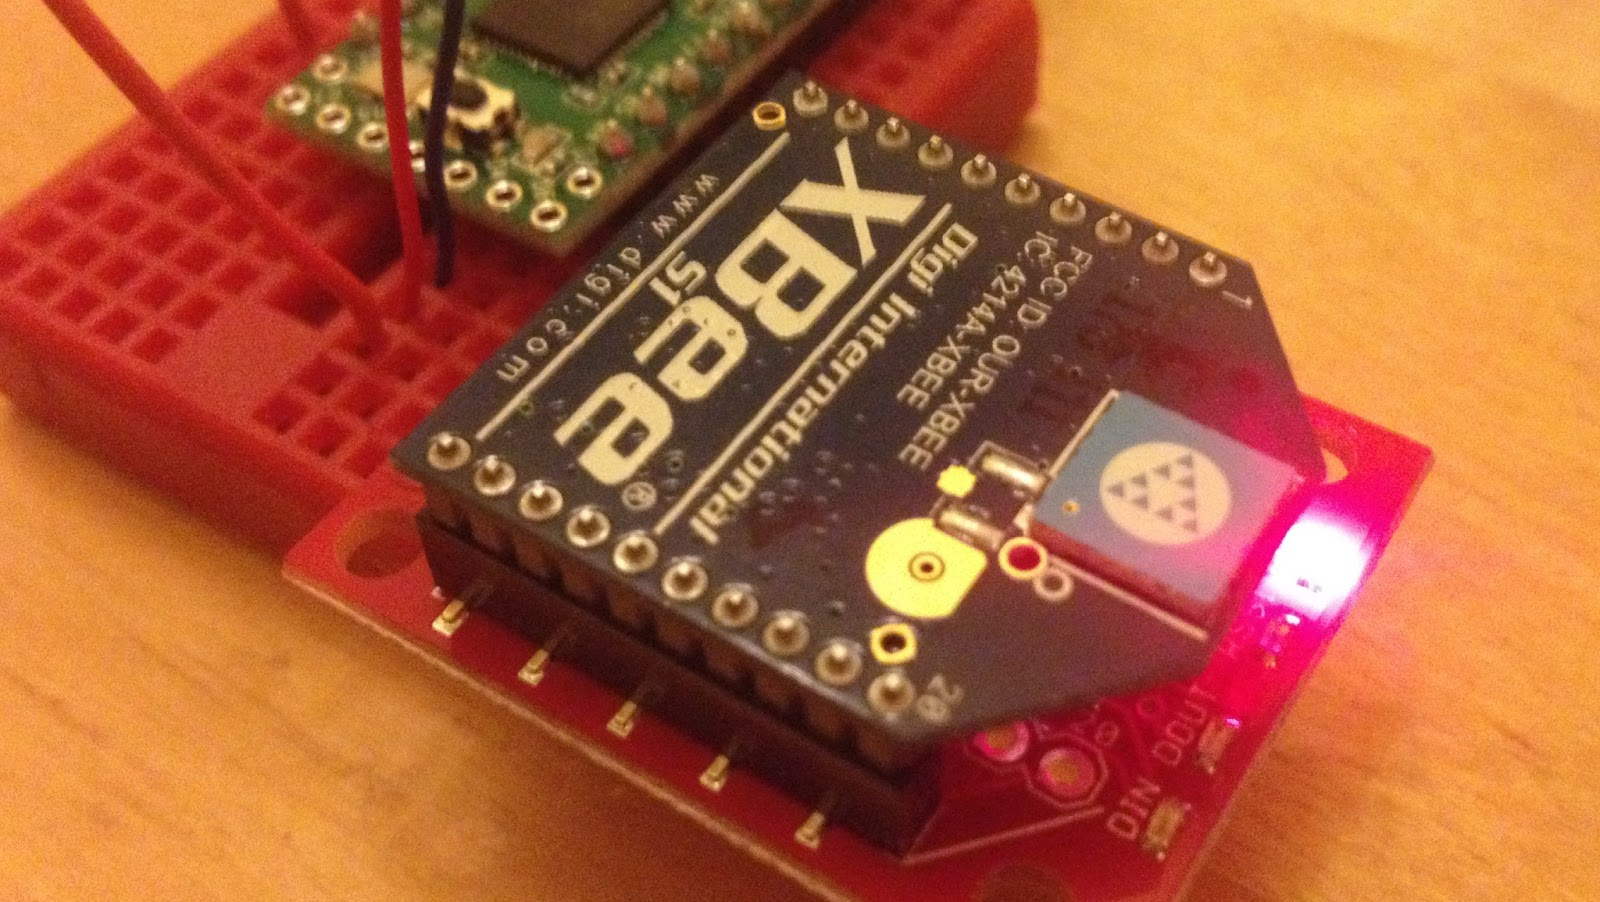 Little Scale Teensy Xbee Simple Native Usb Wireless Midi Controller Aleatoric Blog Archive Circuitbending Tutorial Friday January 18 2013